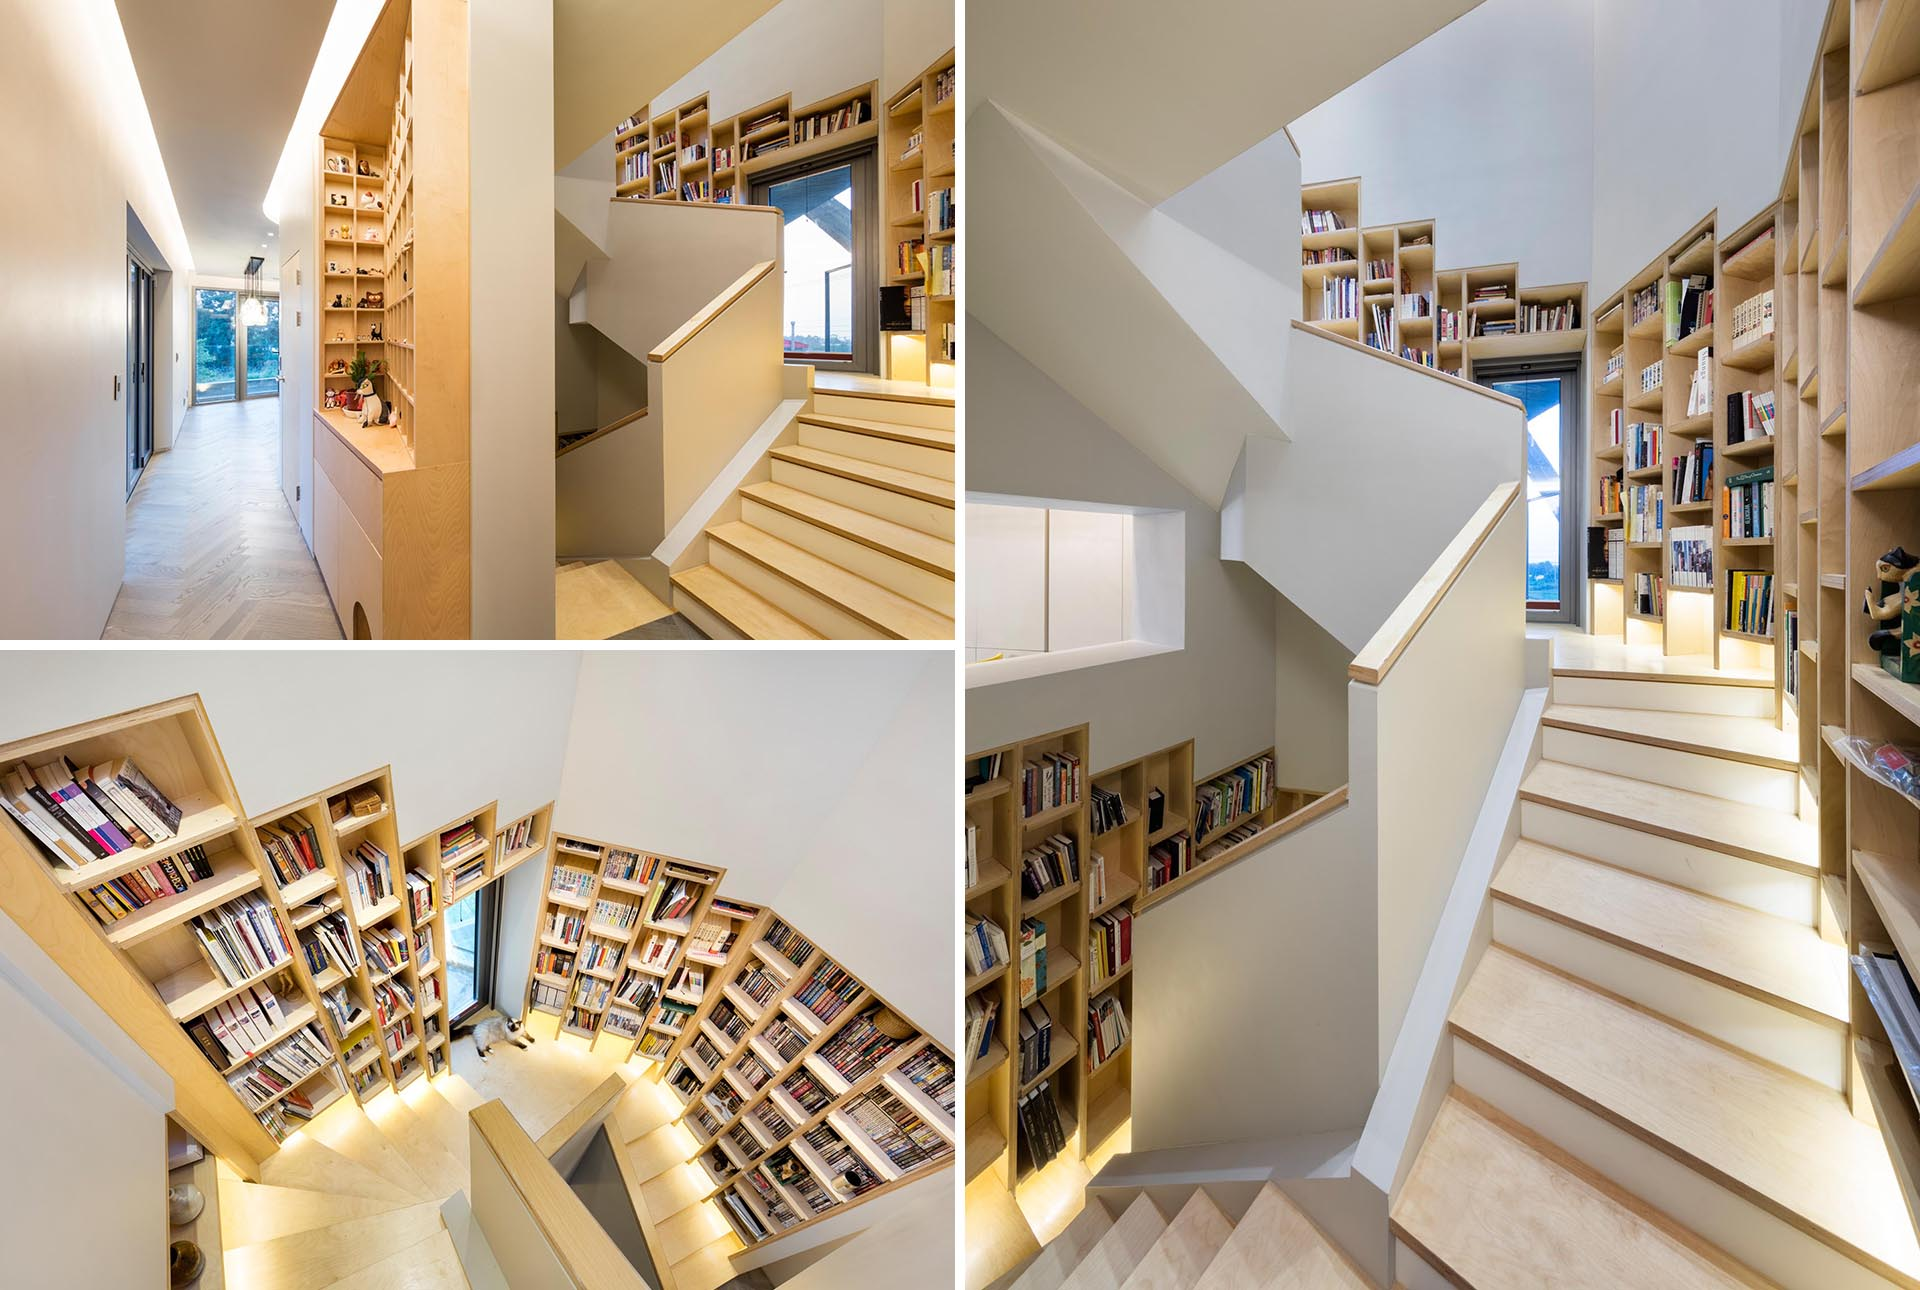 A built-in bookshelf that follows the staircase in a modern home.